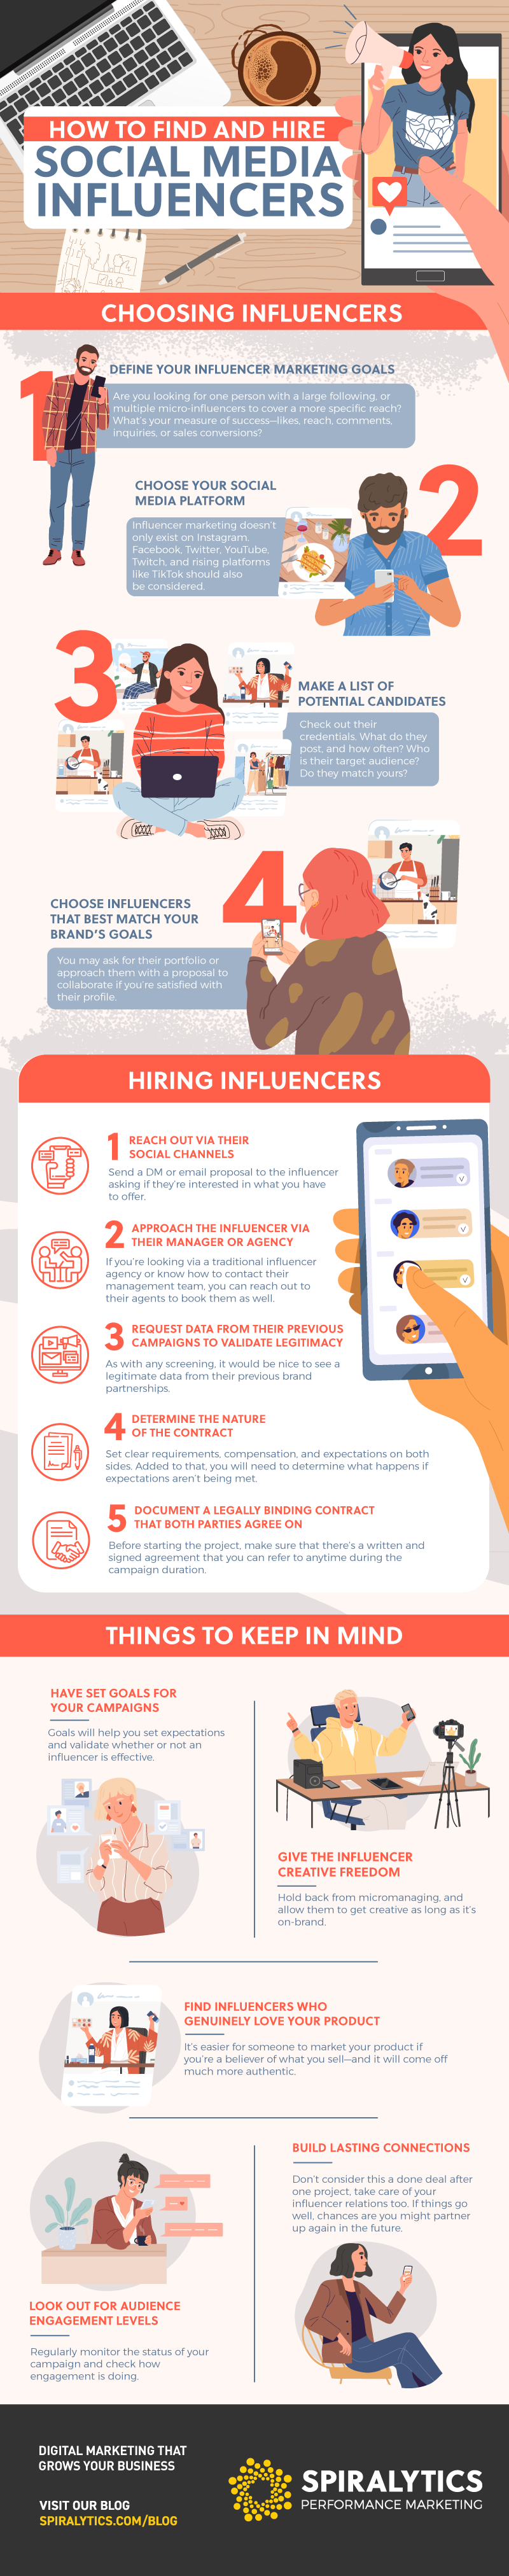 Influencer marketing outreach guide